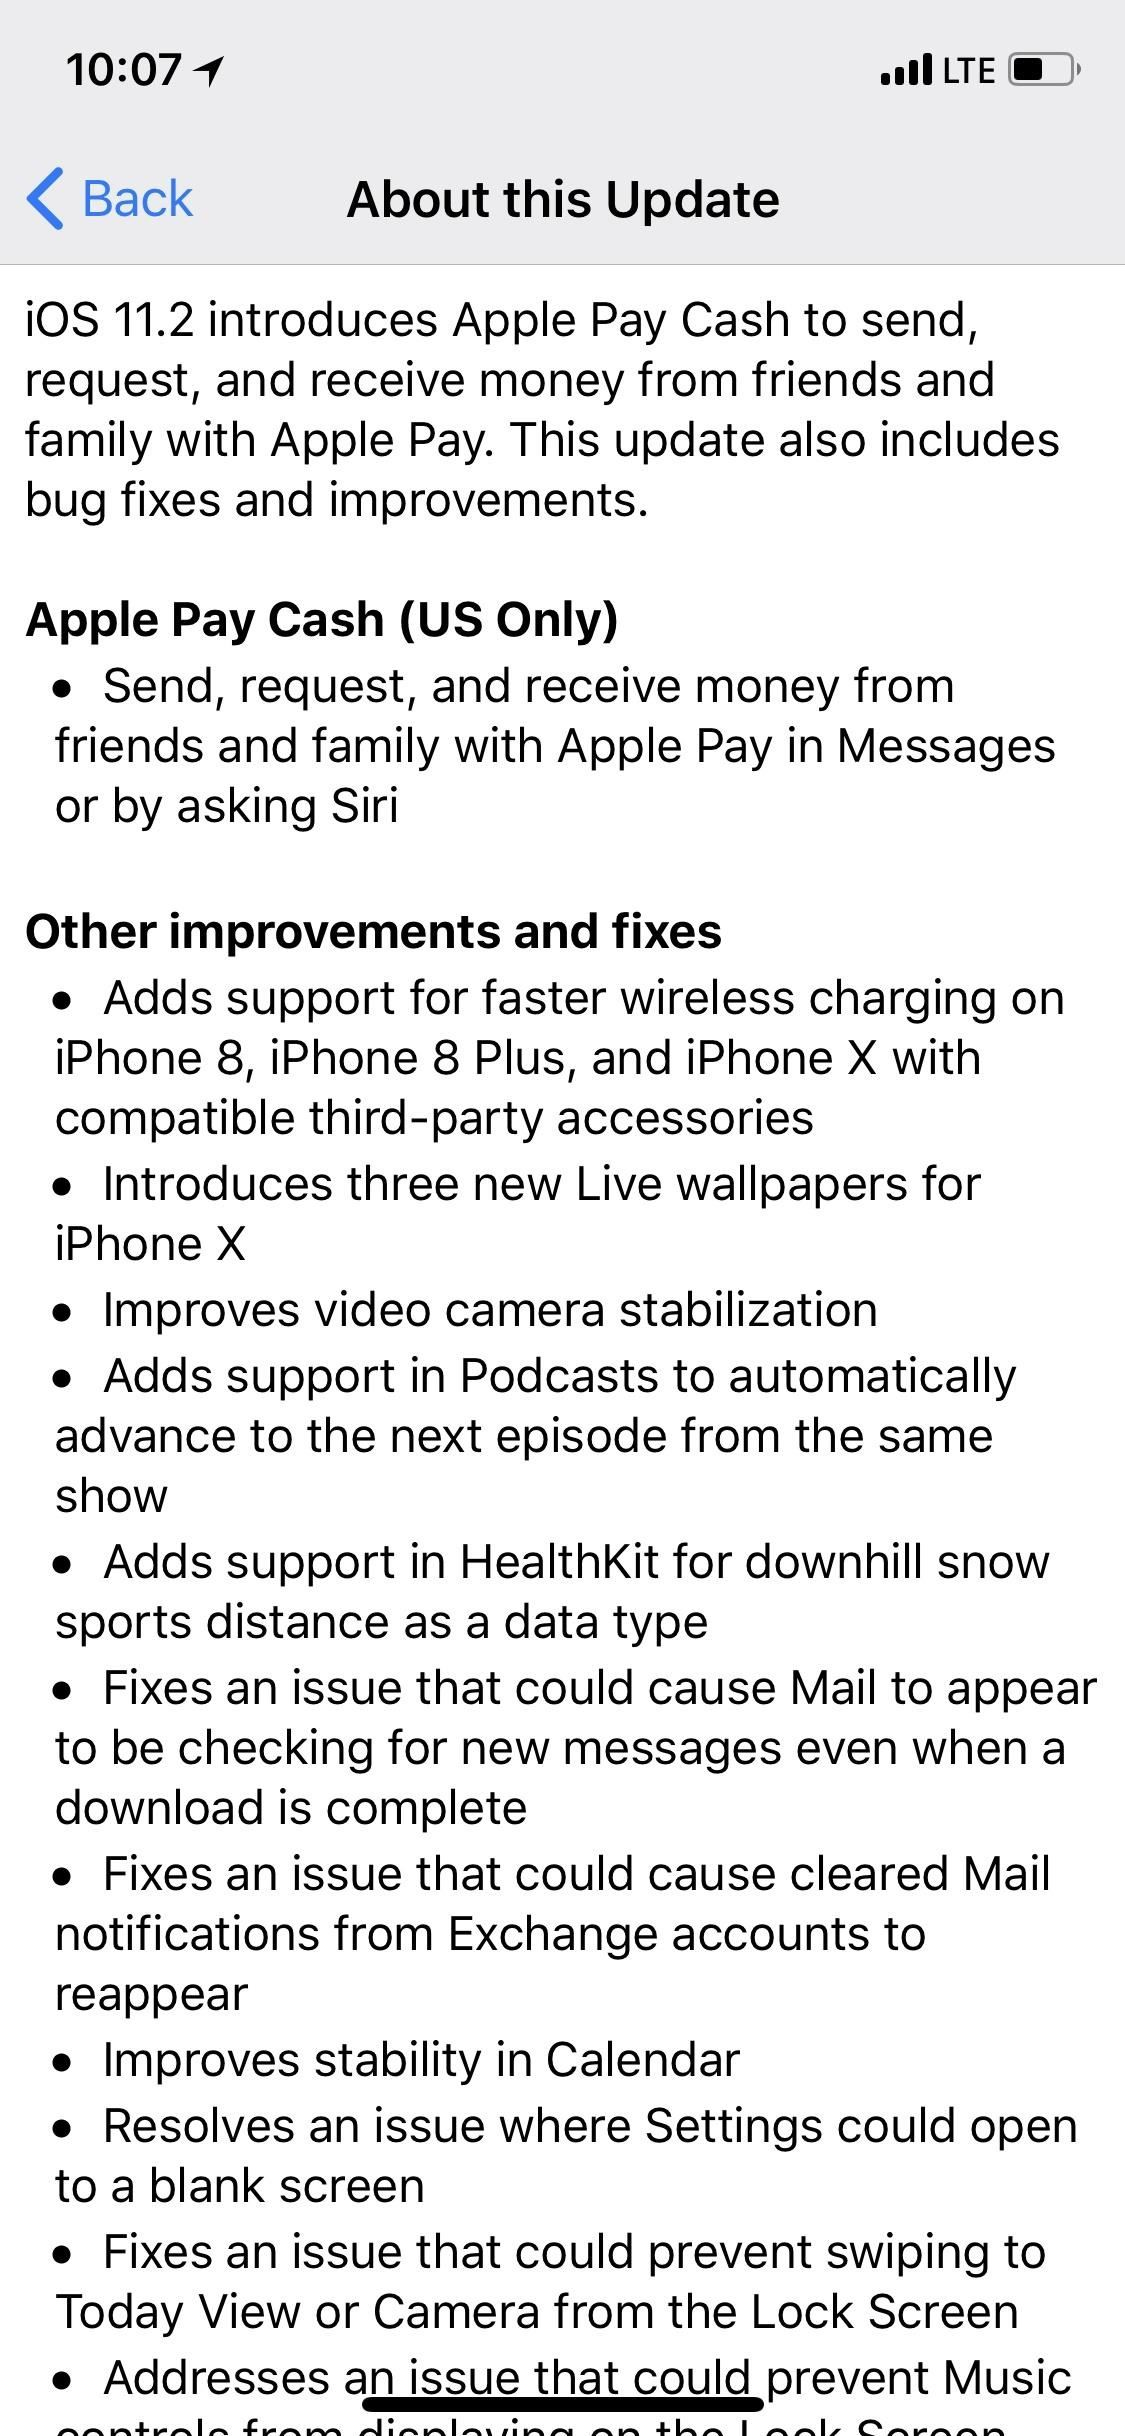 iOS 11.2 Released to the Masses with Bug Fixes, Apple Pay Cash & More New Features